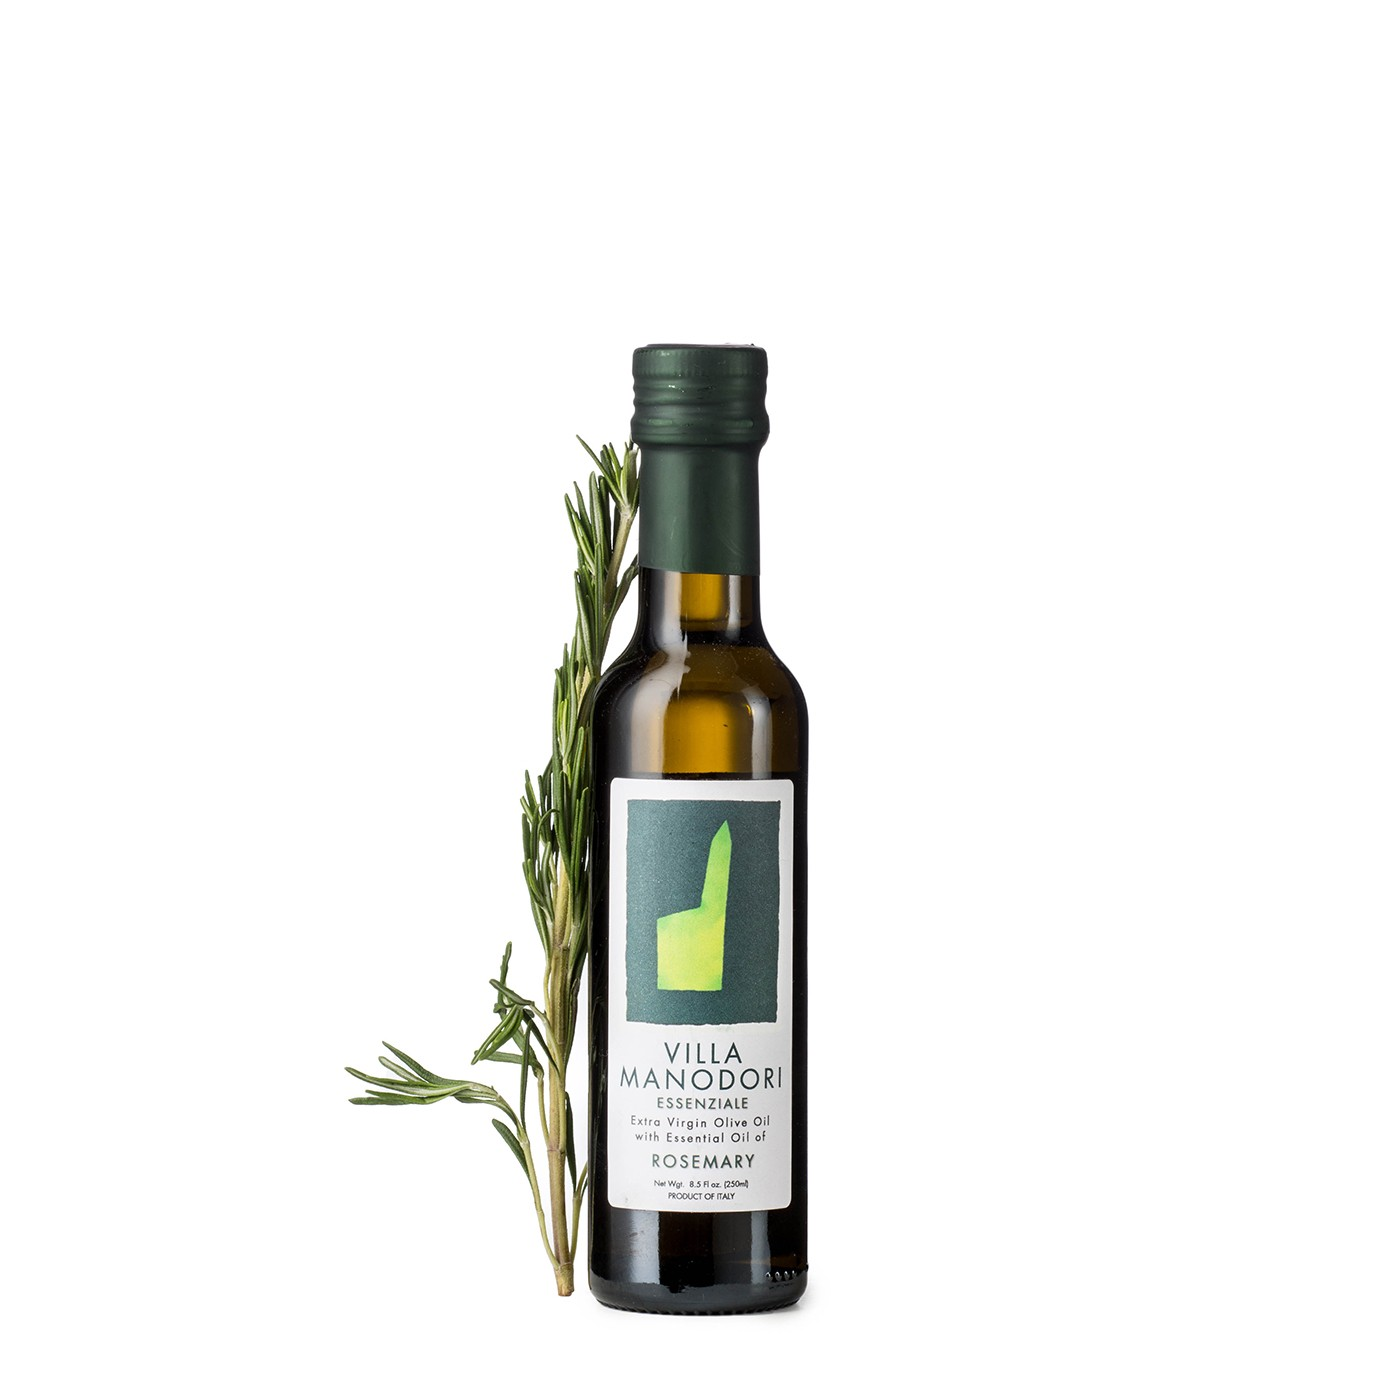 Essenziale Rosemary Oil 8.45 oz